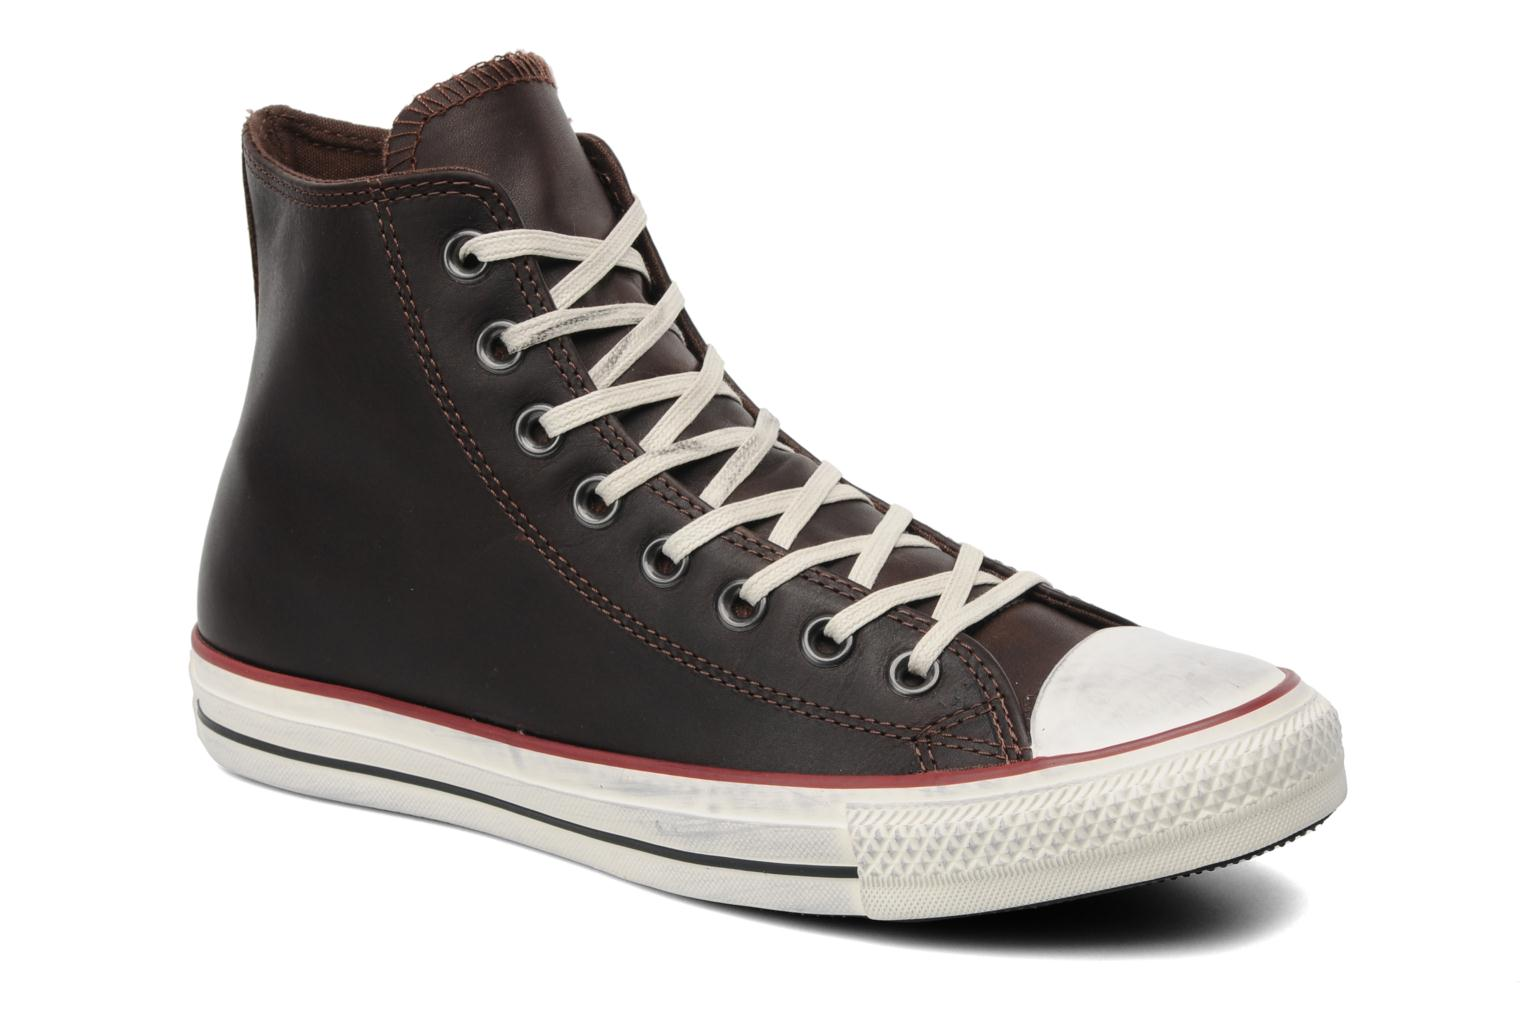 4a8e13f0e5af53 Trainers Converse Chuck Taylor All Star Well Worn Leather Hi M Brown  detailed view  Pair